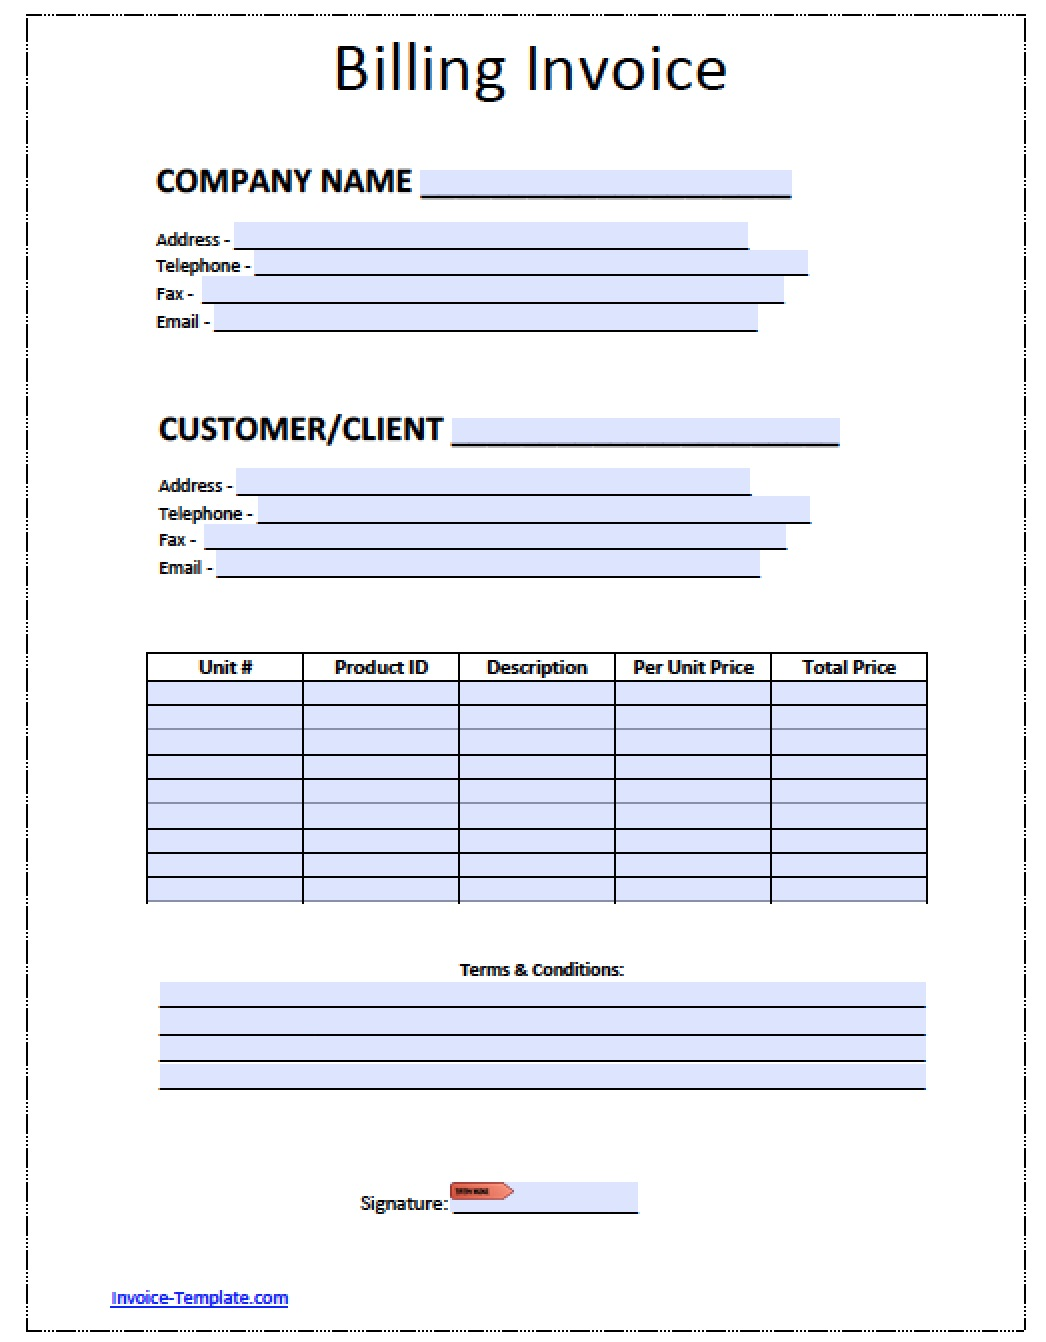 Aaaaeroincus  Terrific Billing Invoice Invoices Faq U Cloudflare Support Billing  With Excellent Free Billing Invoice Template  Excel  Pdf  Word Doc  Billing With Breathtaking Free Printable Service Invoices Also Free Invoice Website In Addition Fedex Ground Commercial Invoice And Invoice With Square As Well As Perforated Paper For Invoices Additionally Generate Invoices From Happytomco With Aaaaeroincus  Excellent Billing Invoice Invoices Faq U Cloudflare Support Billing  With Breathtaking Free Billing Invoice Template  Excel  Pdf  Word Doc  Billing And Terrific Free Printable Service Invoices Also Free Invoice Website In Addition Fedex Ground Commercial Invoice From Happytomco